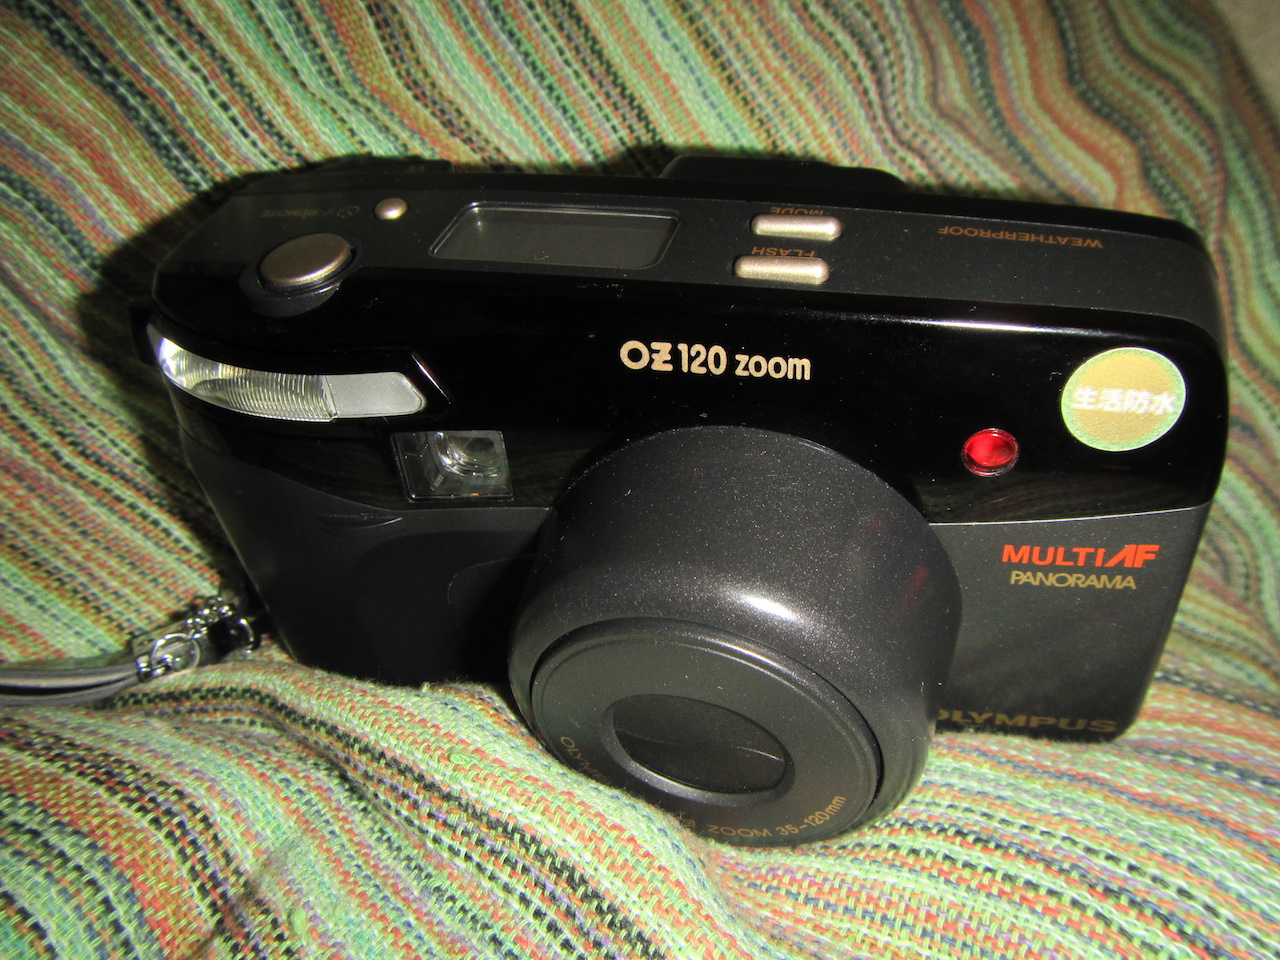 Olympus OZ120 Zoom (superzoom)